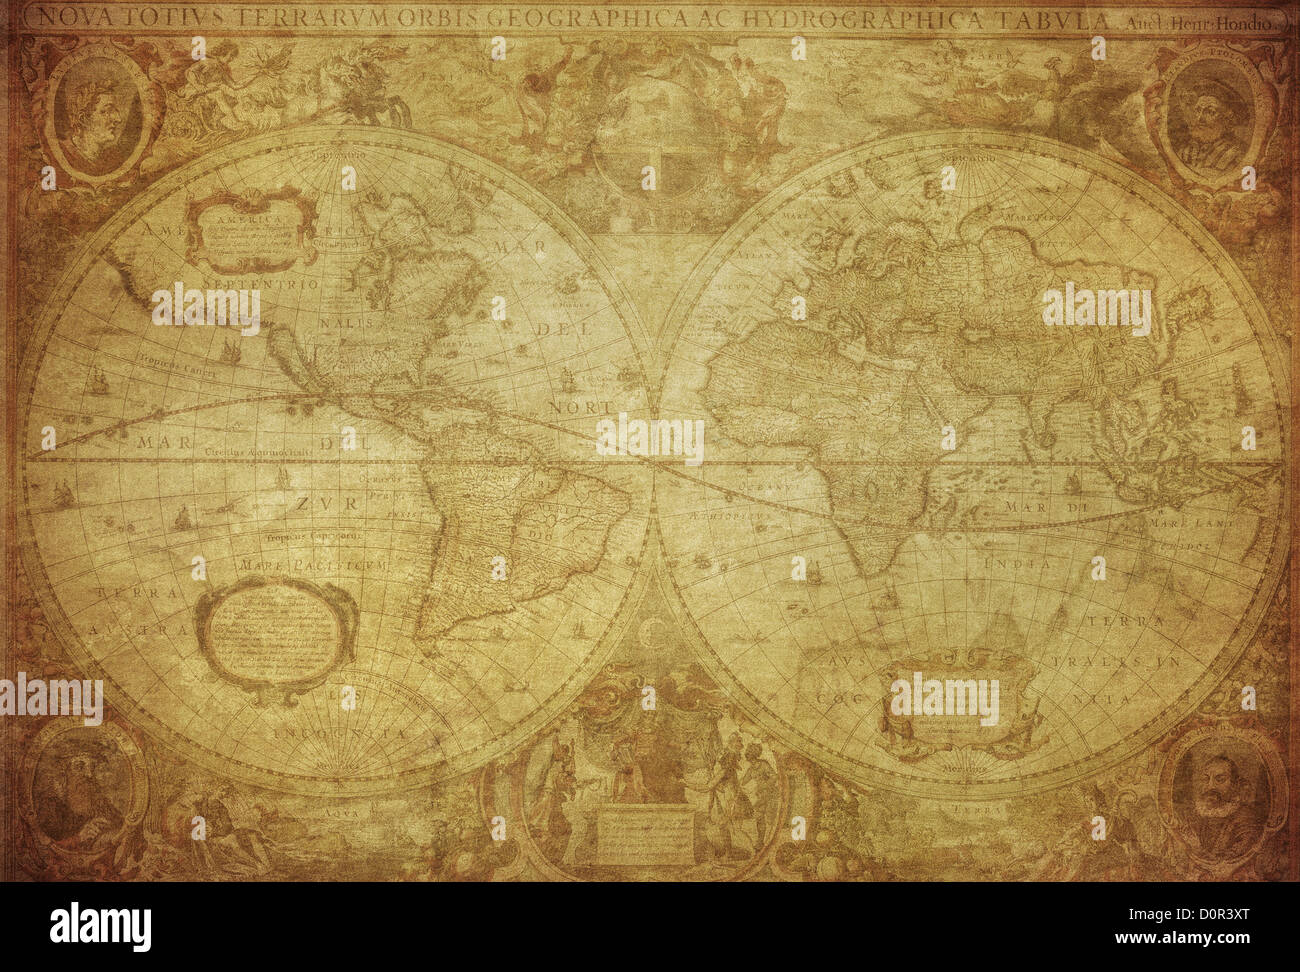 vintage map of the world 1630 - Stock Image